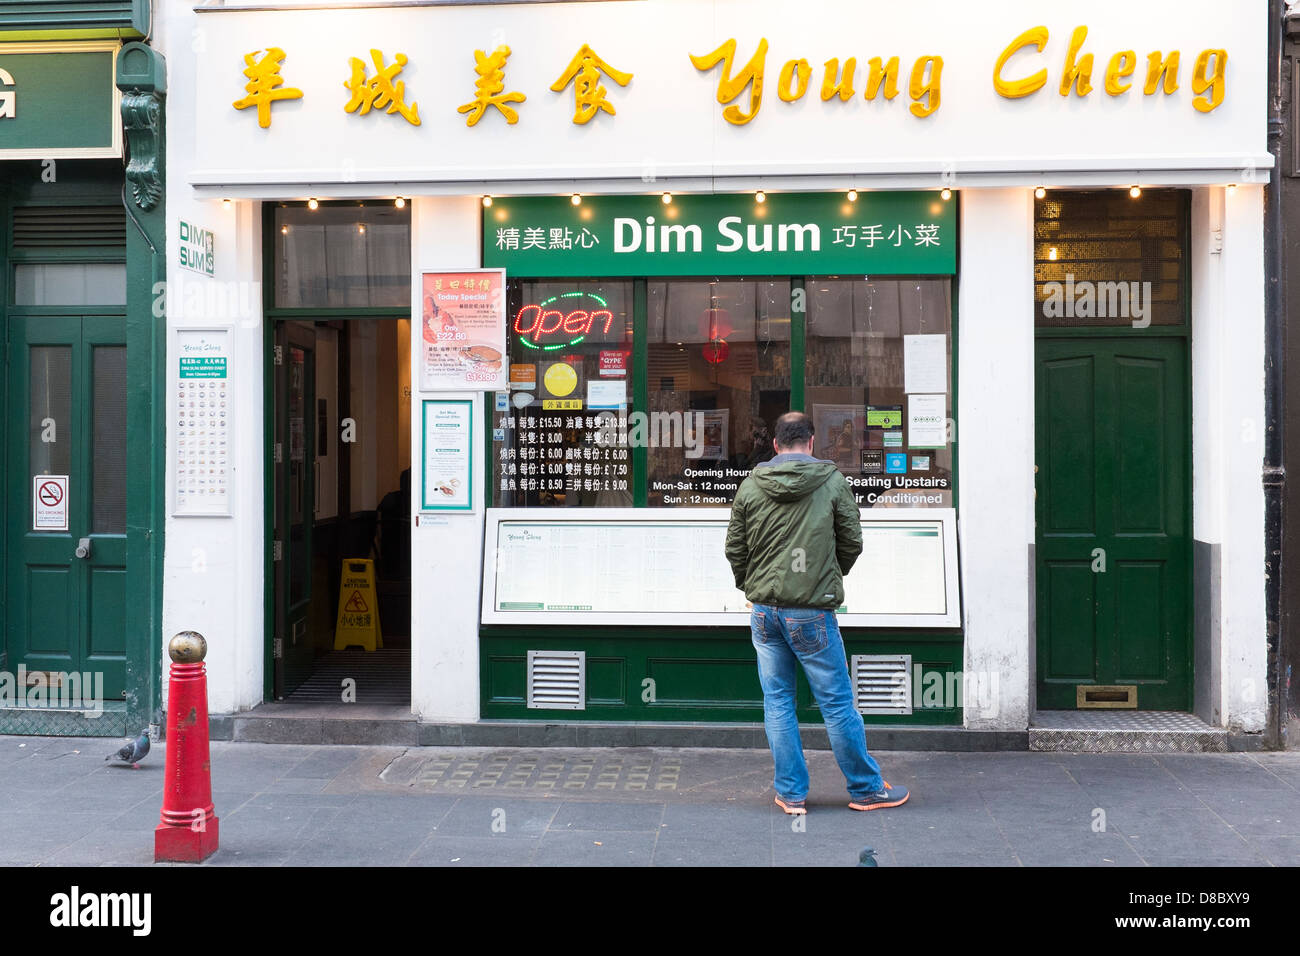 Man outside Chinese restaurant in china town london - Stock Image